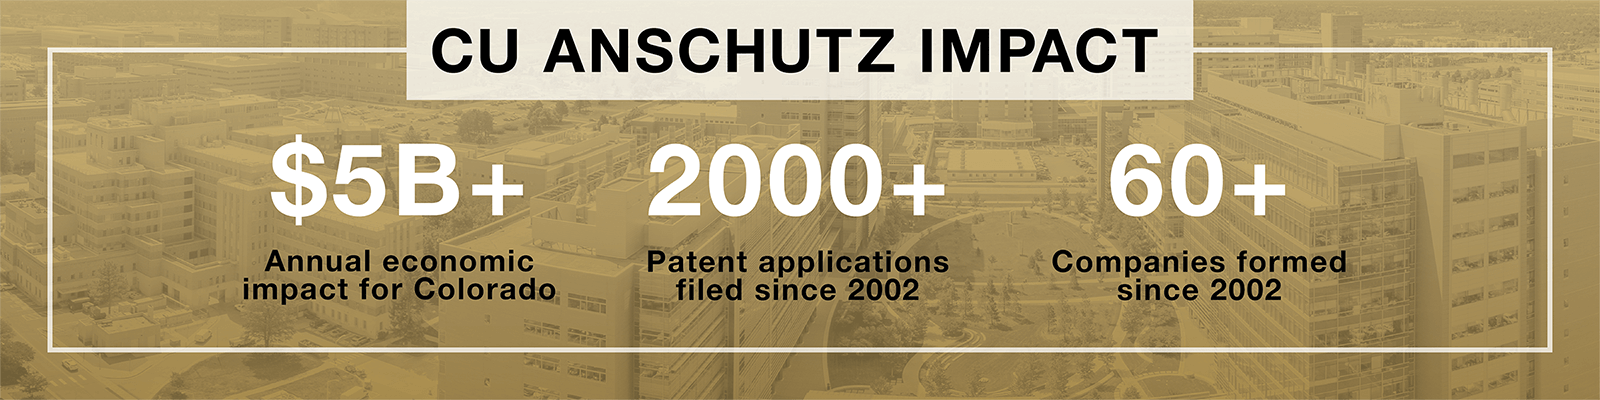 CU Anschutz impacts: $5+ billion annual economic impact for Colorado. 2000+ patent applications filed since 2002. 60+ companies formed since 2002